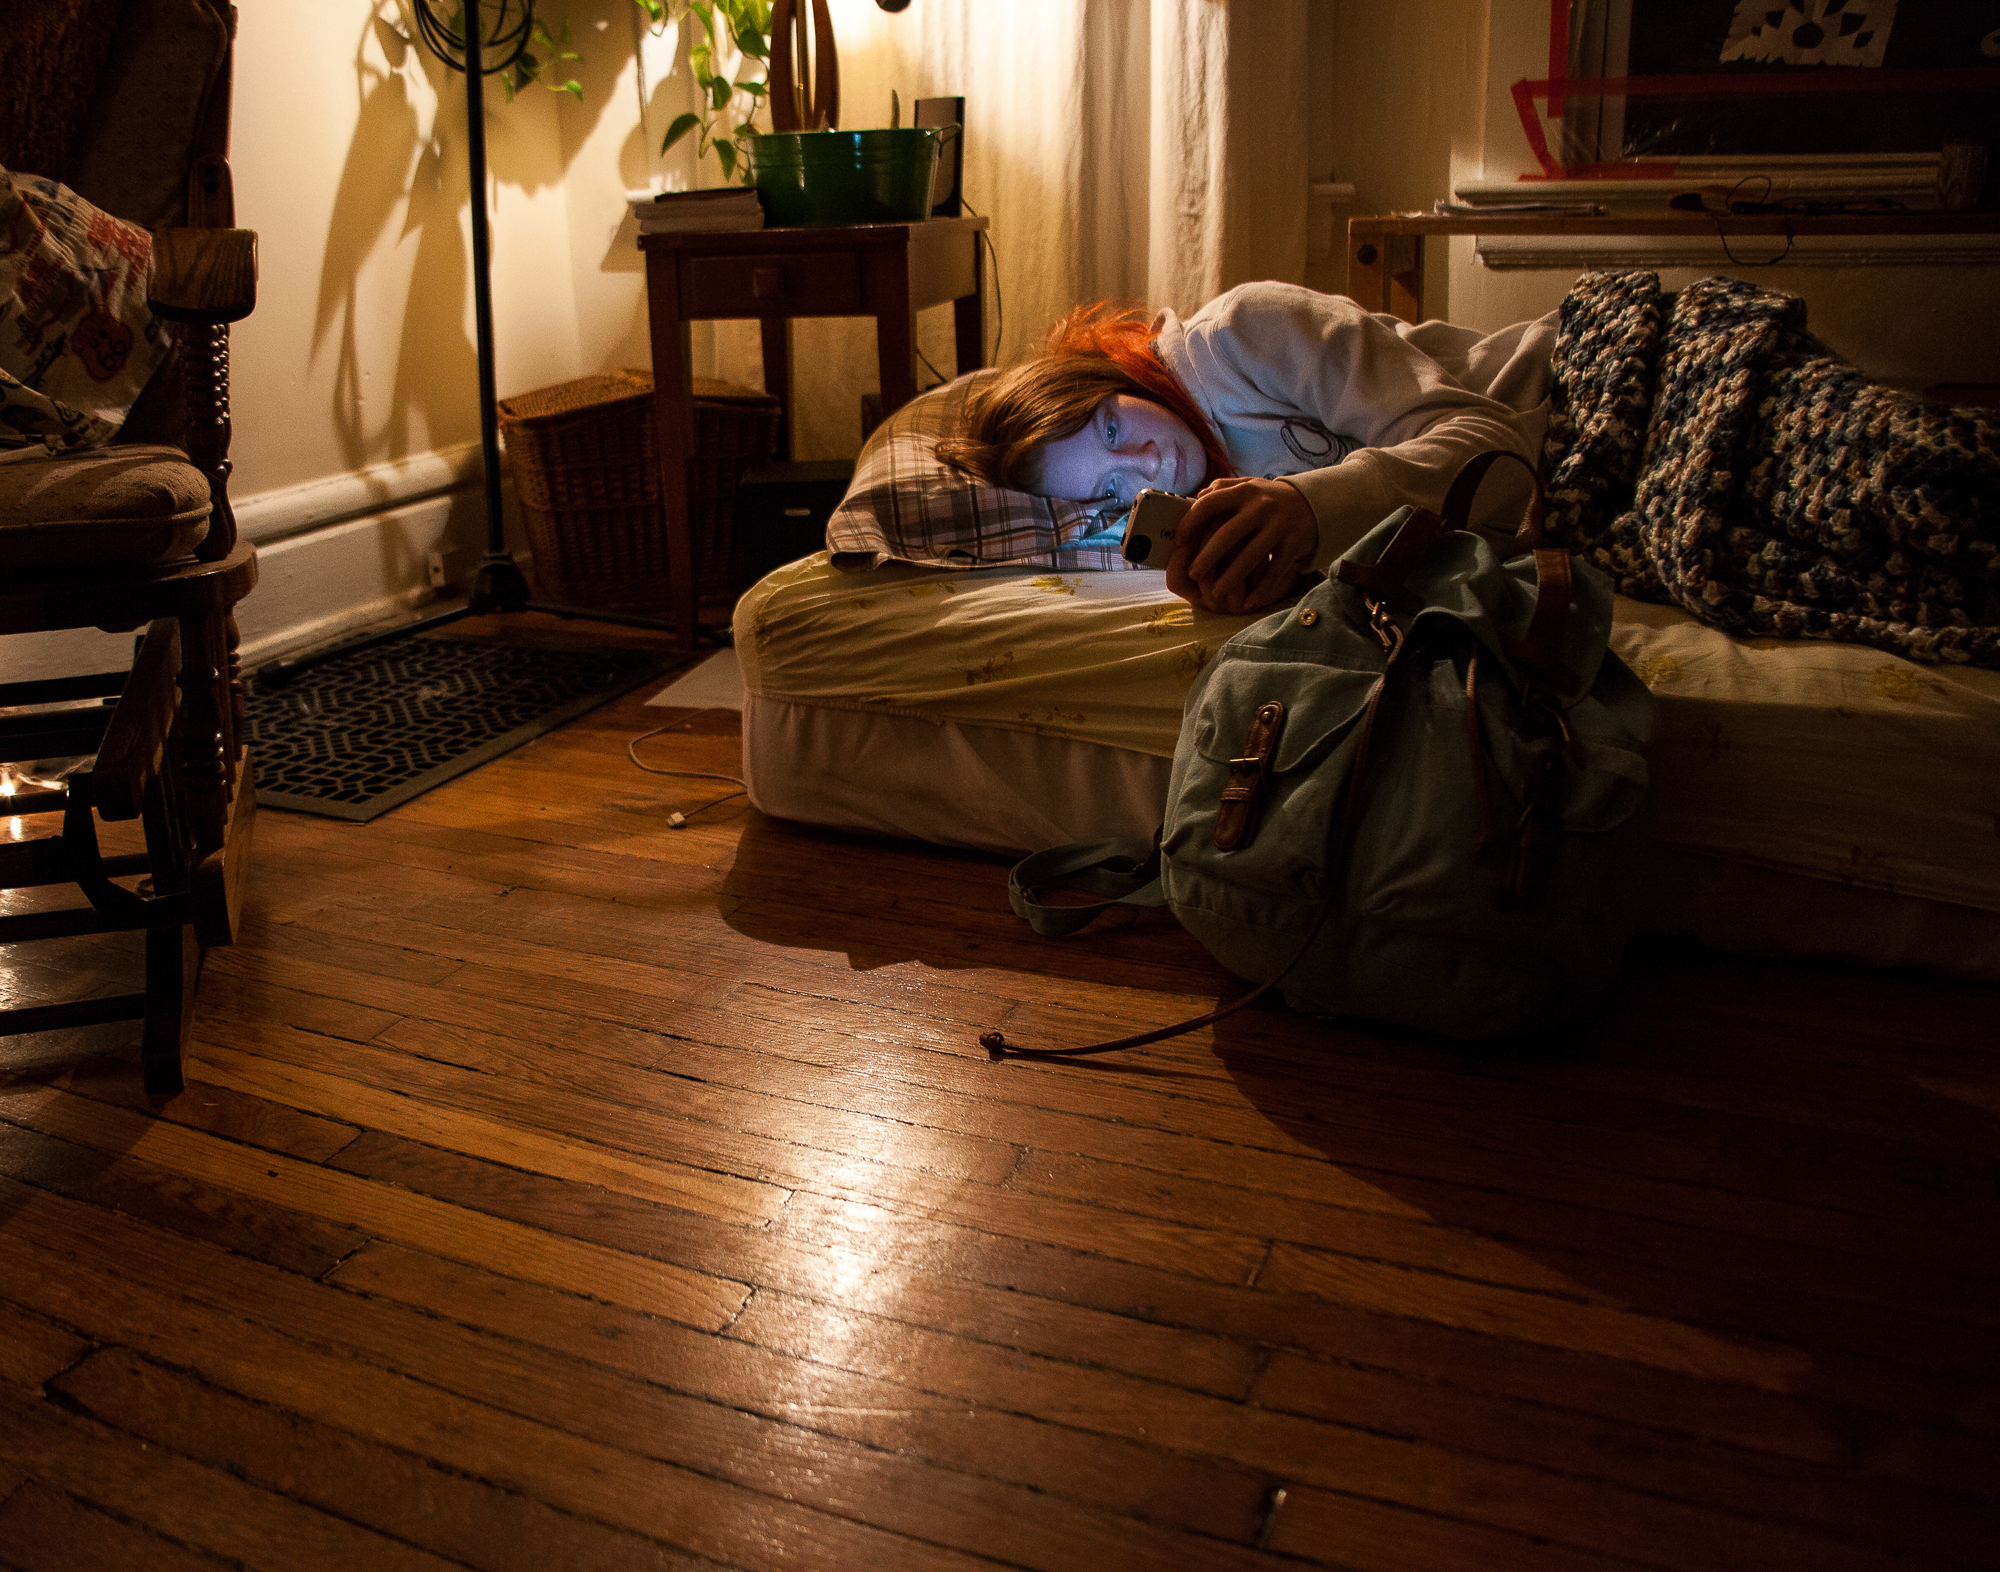 Sometimes finding shelter as homeless teens means crashing in the middle of a friend's living room with nothing to offer them.